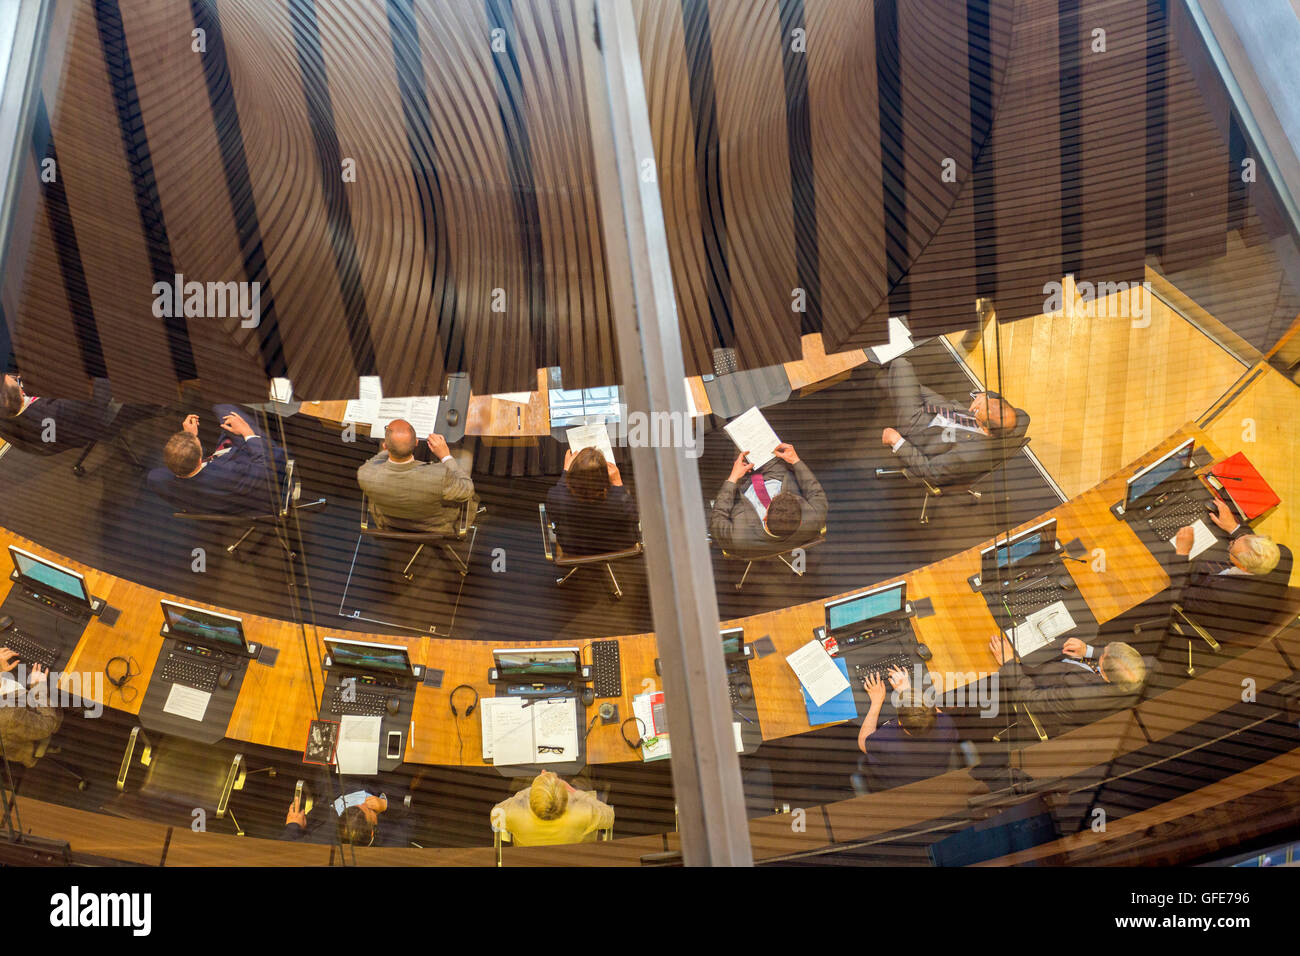 Welsh Assembly members in the chamber of the Senedd building Cardiff, South Glamorgan, Wales, UK - Stock Image